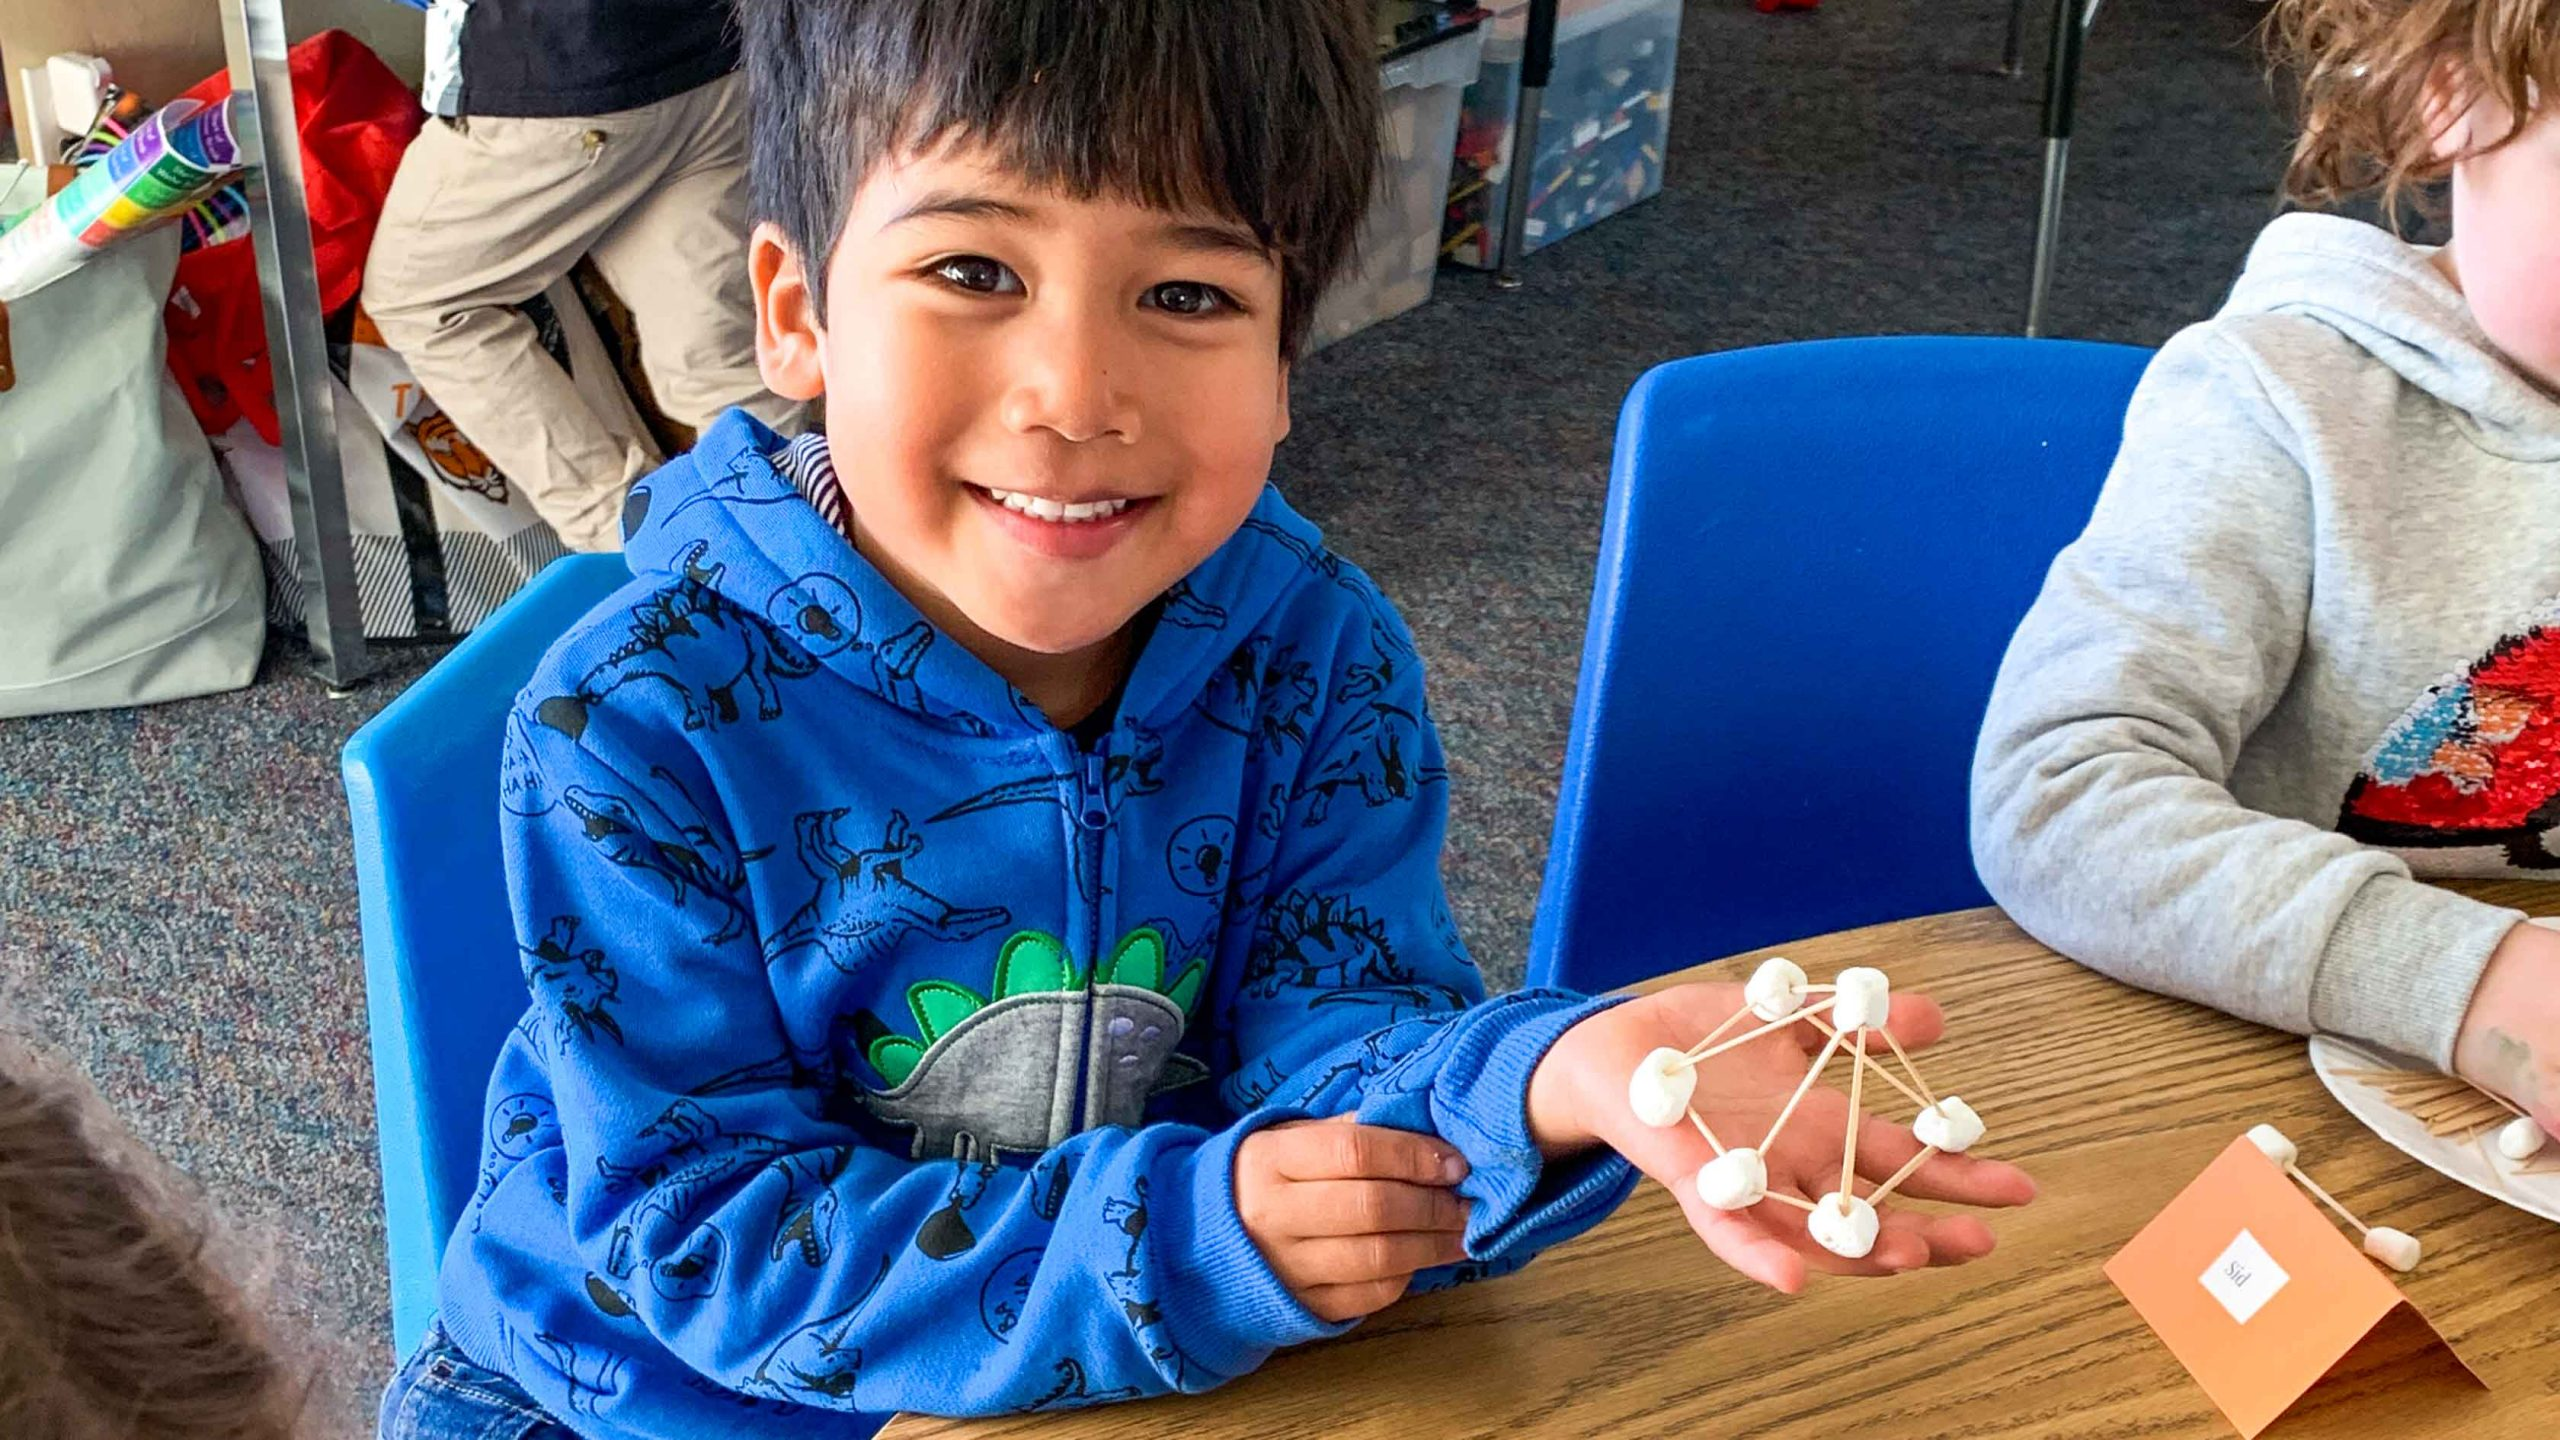 A student working on a crafting project in the extended day program.